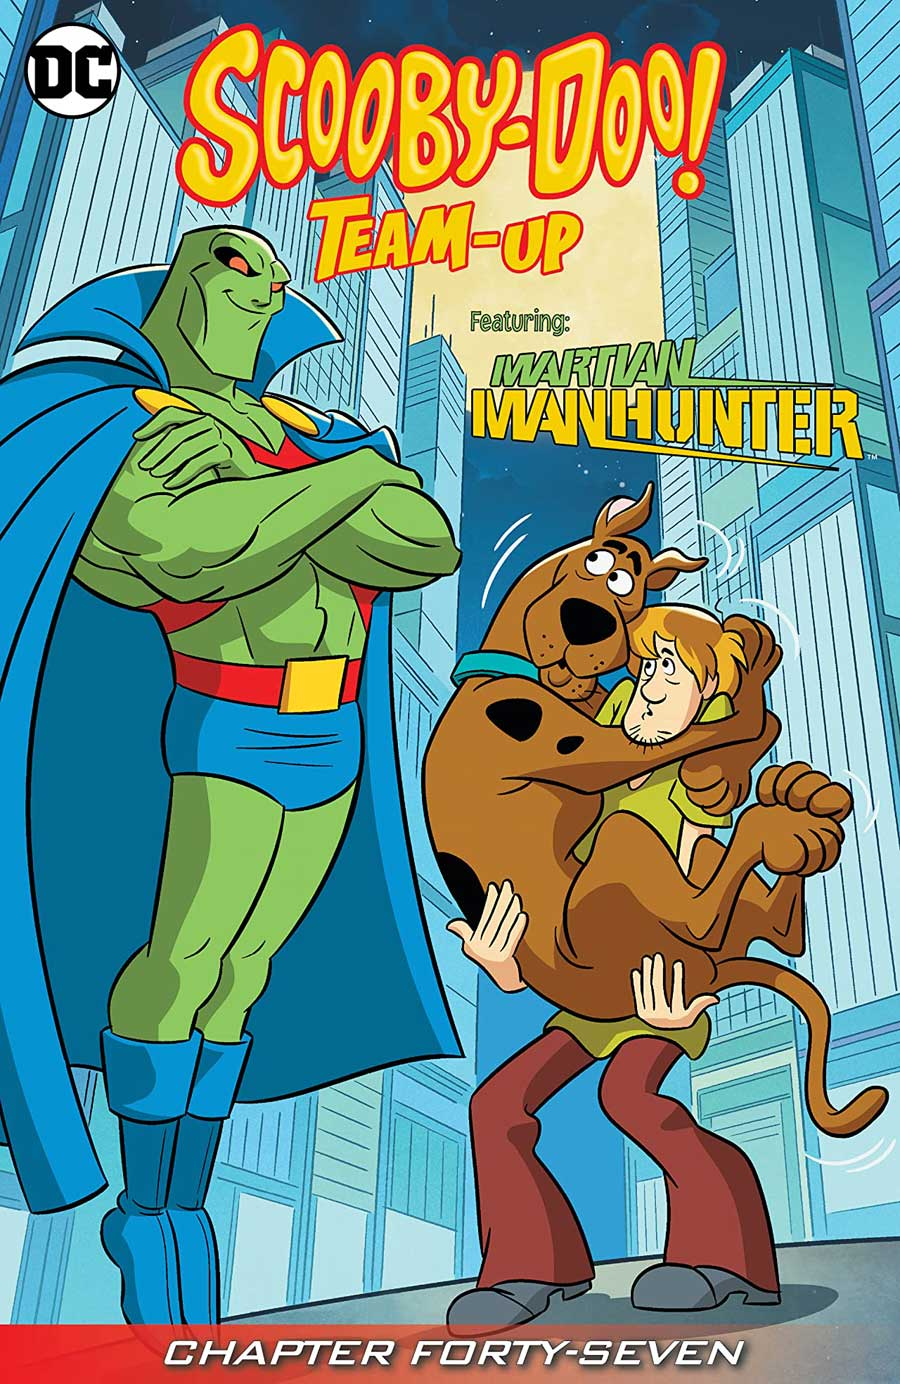 SCOOBY-DOO TEAM-UP #47-48 digitally -- #24 hardcopy